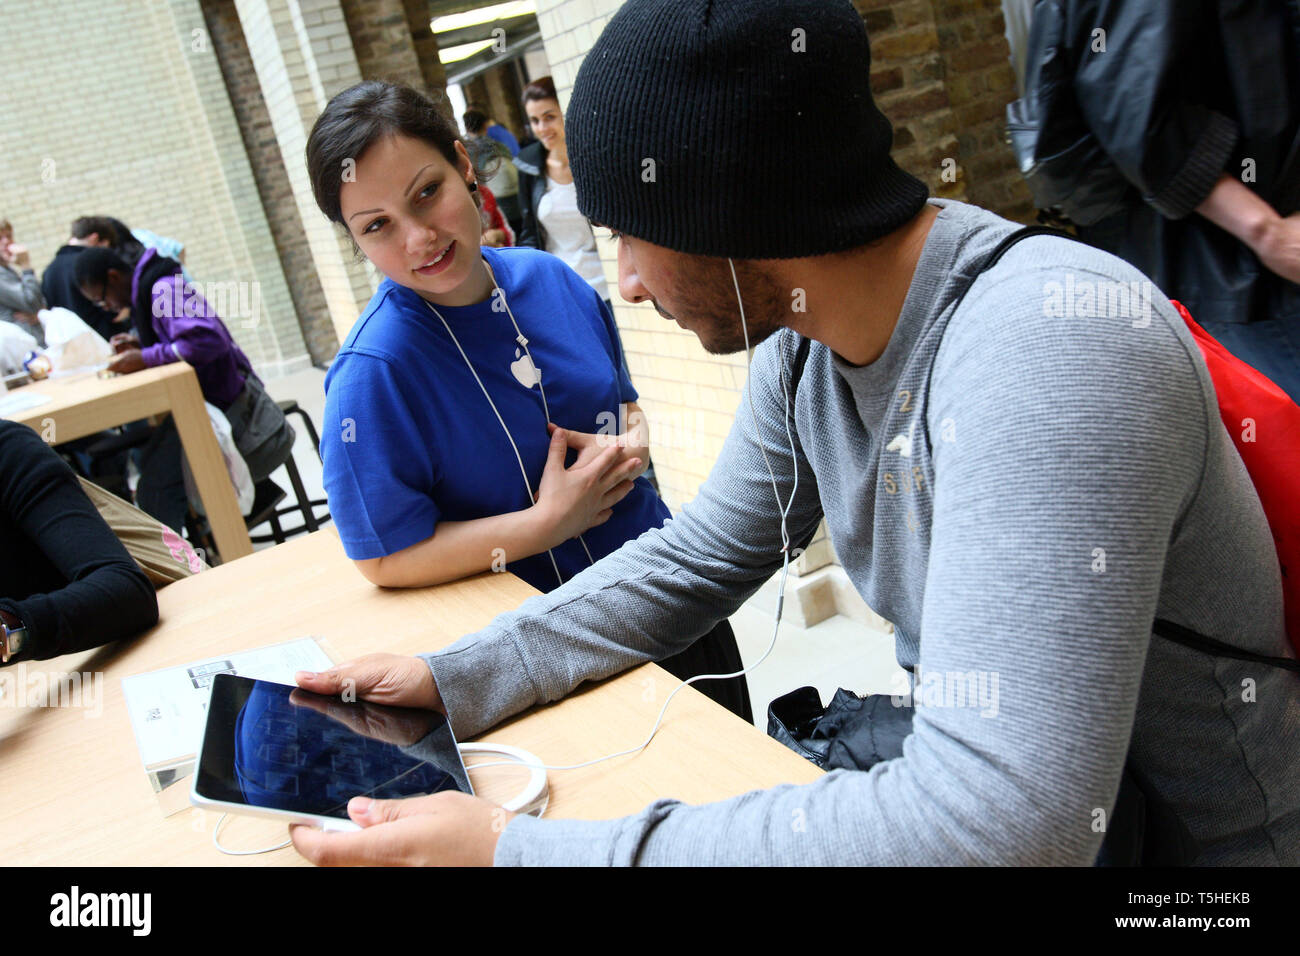 Staff giving advice on using the iPad at Apples Covent Garden store in London. 7 August 2010. - Stock Image